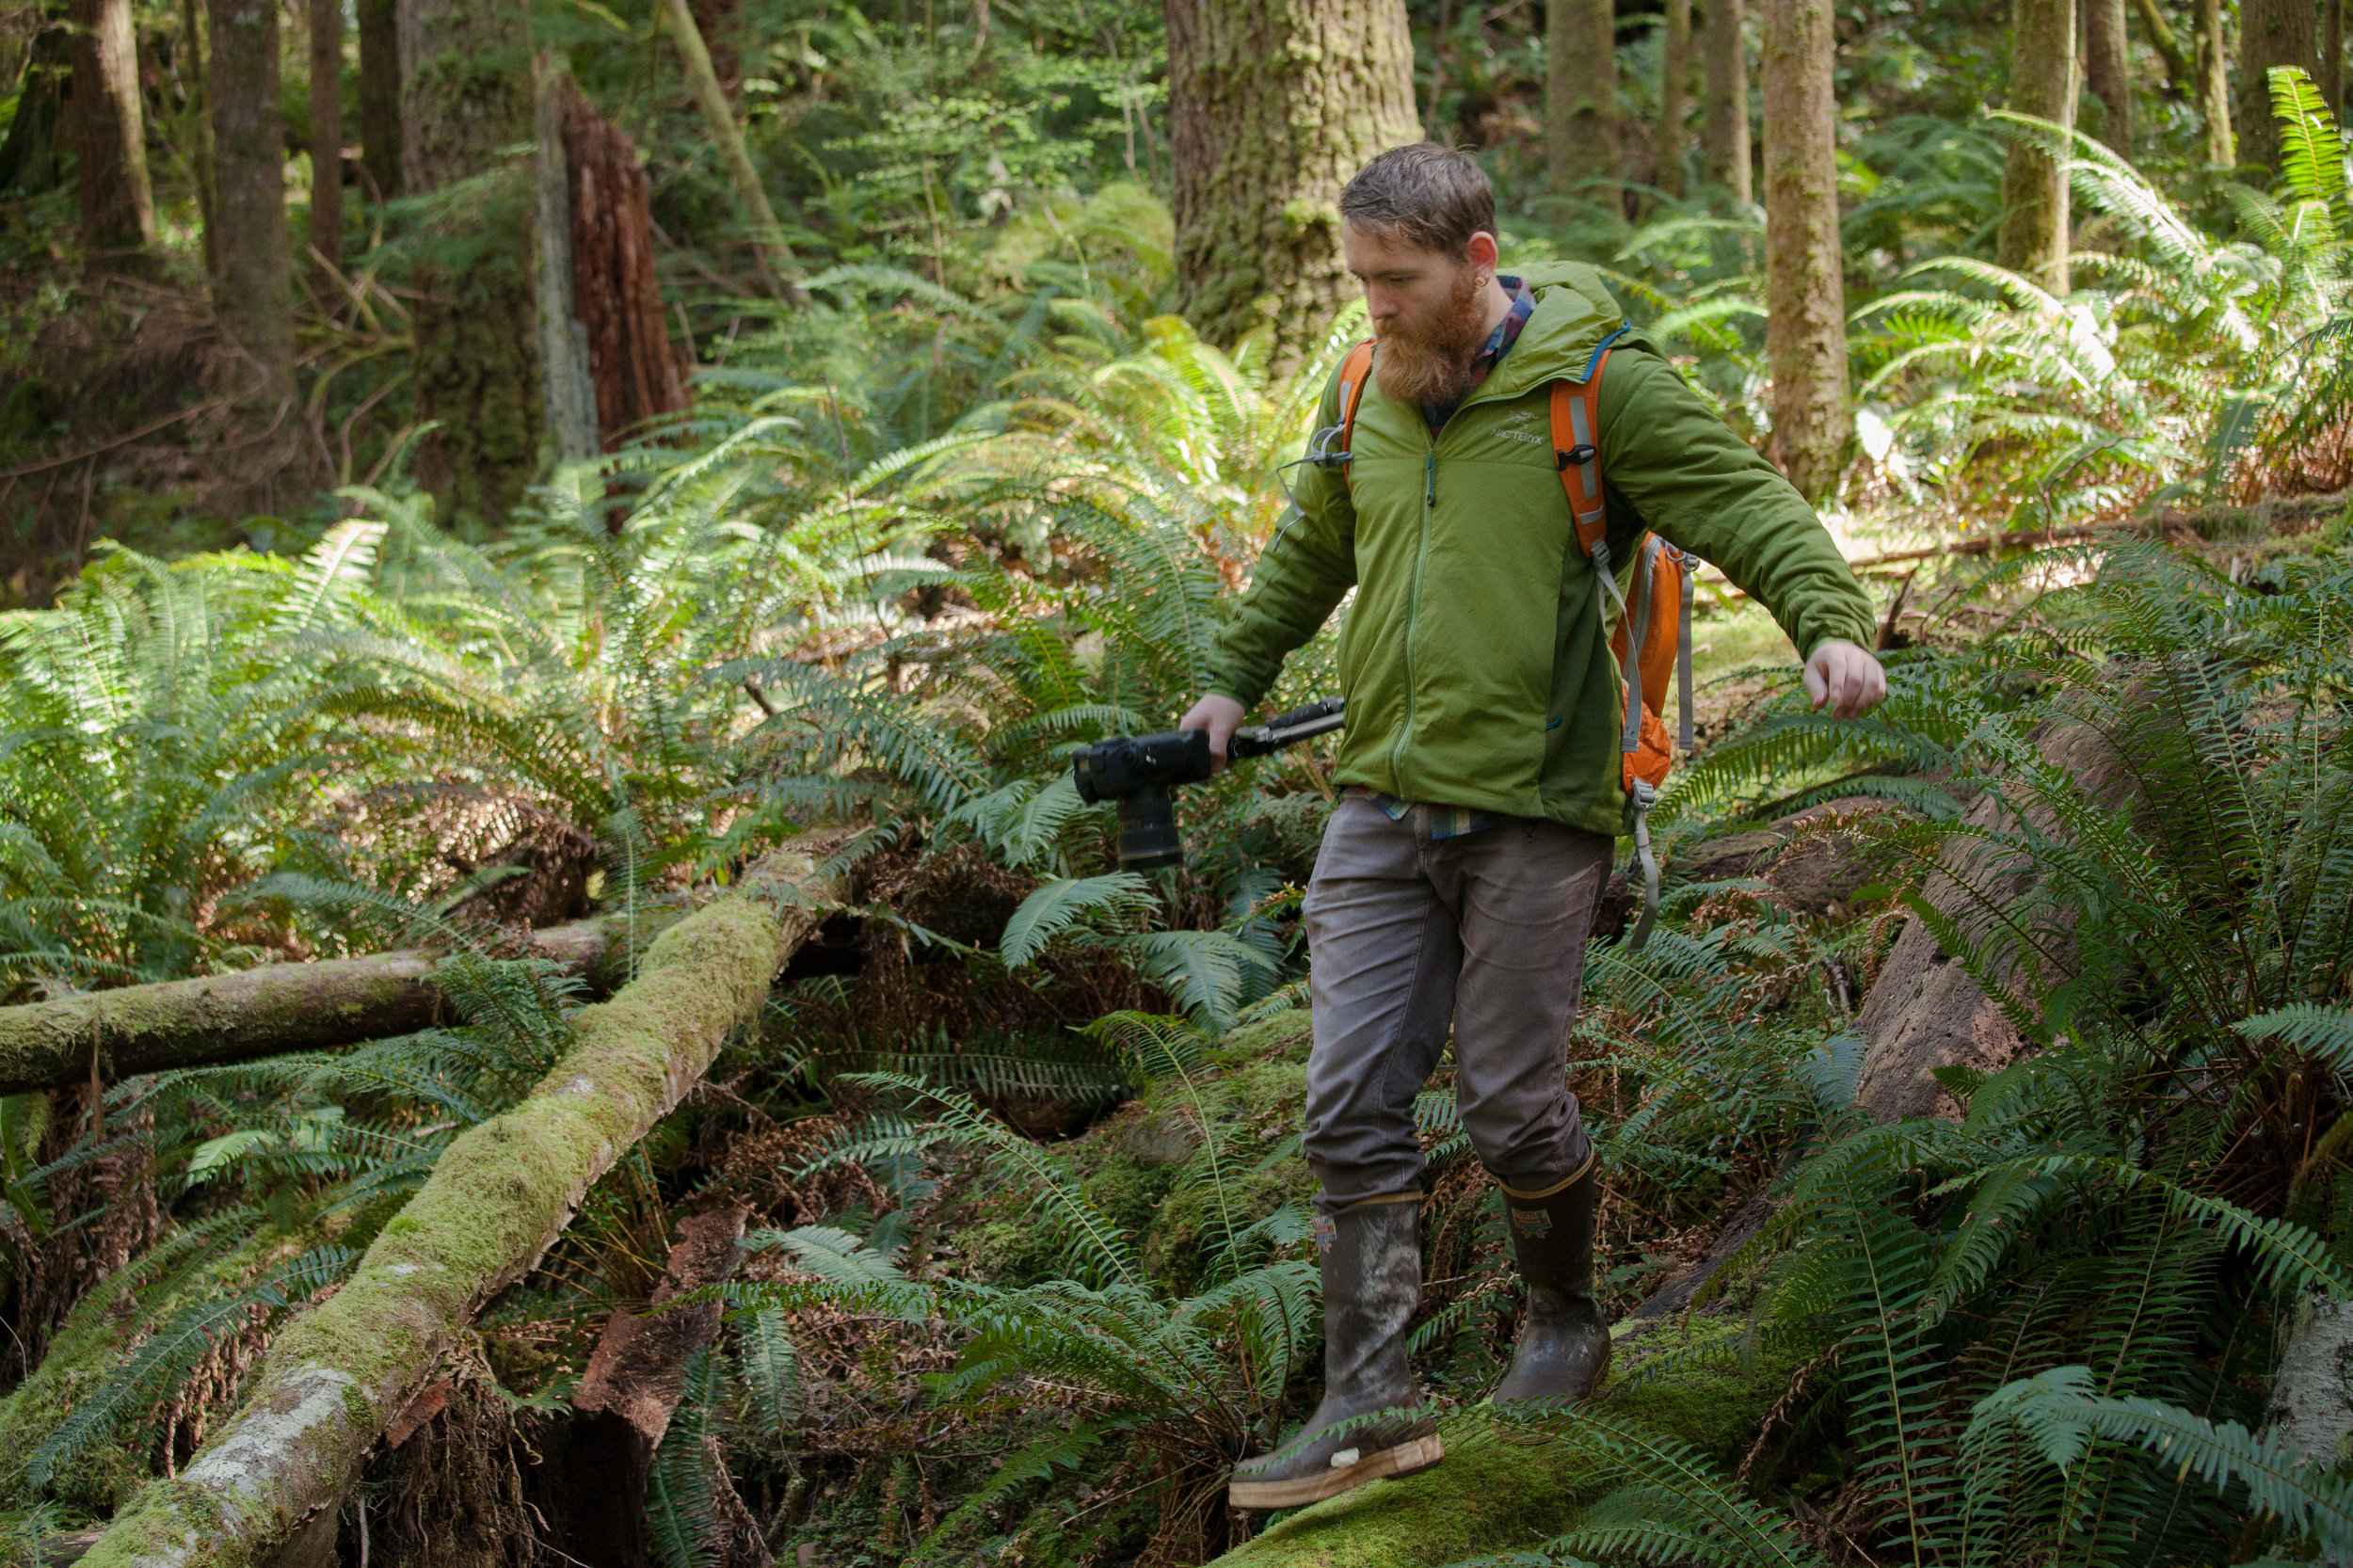 Adam Andis explores the lush ecosystem during a photography outing at  Olympic National Forest, Washington.